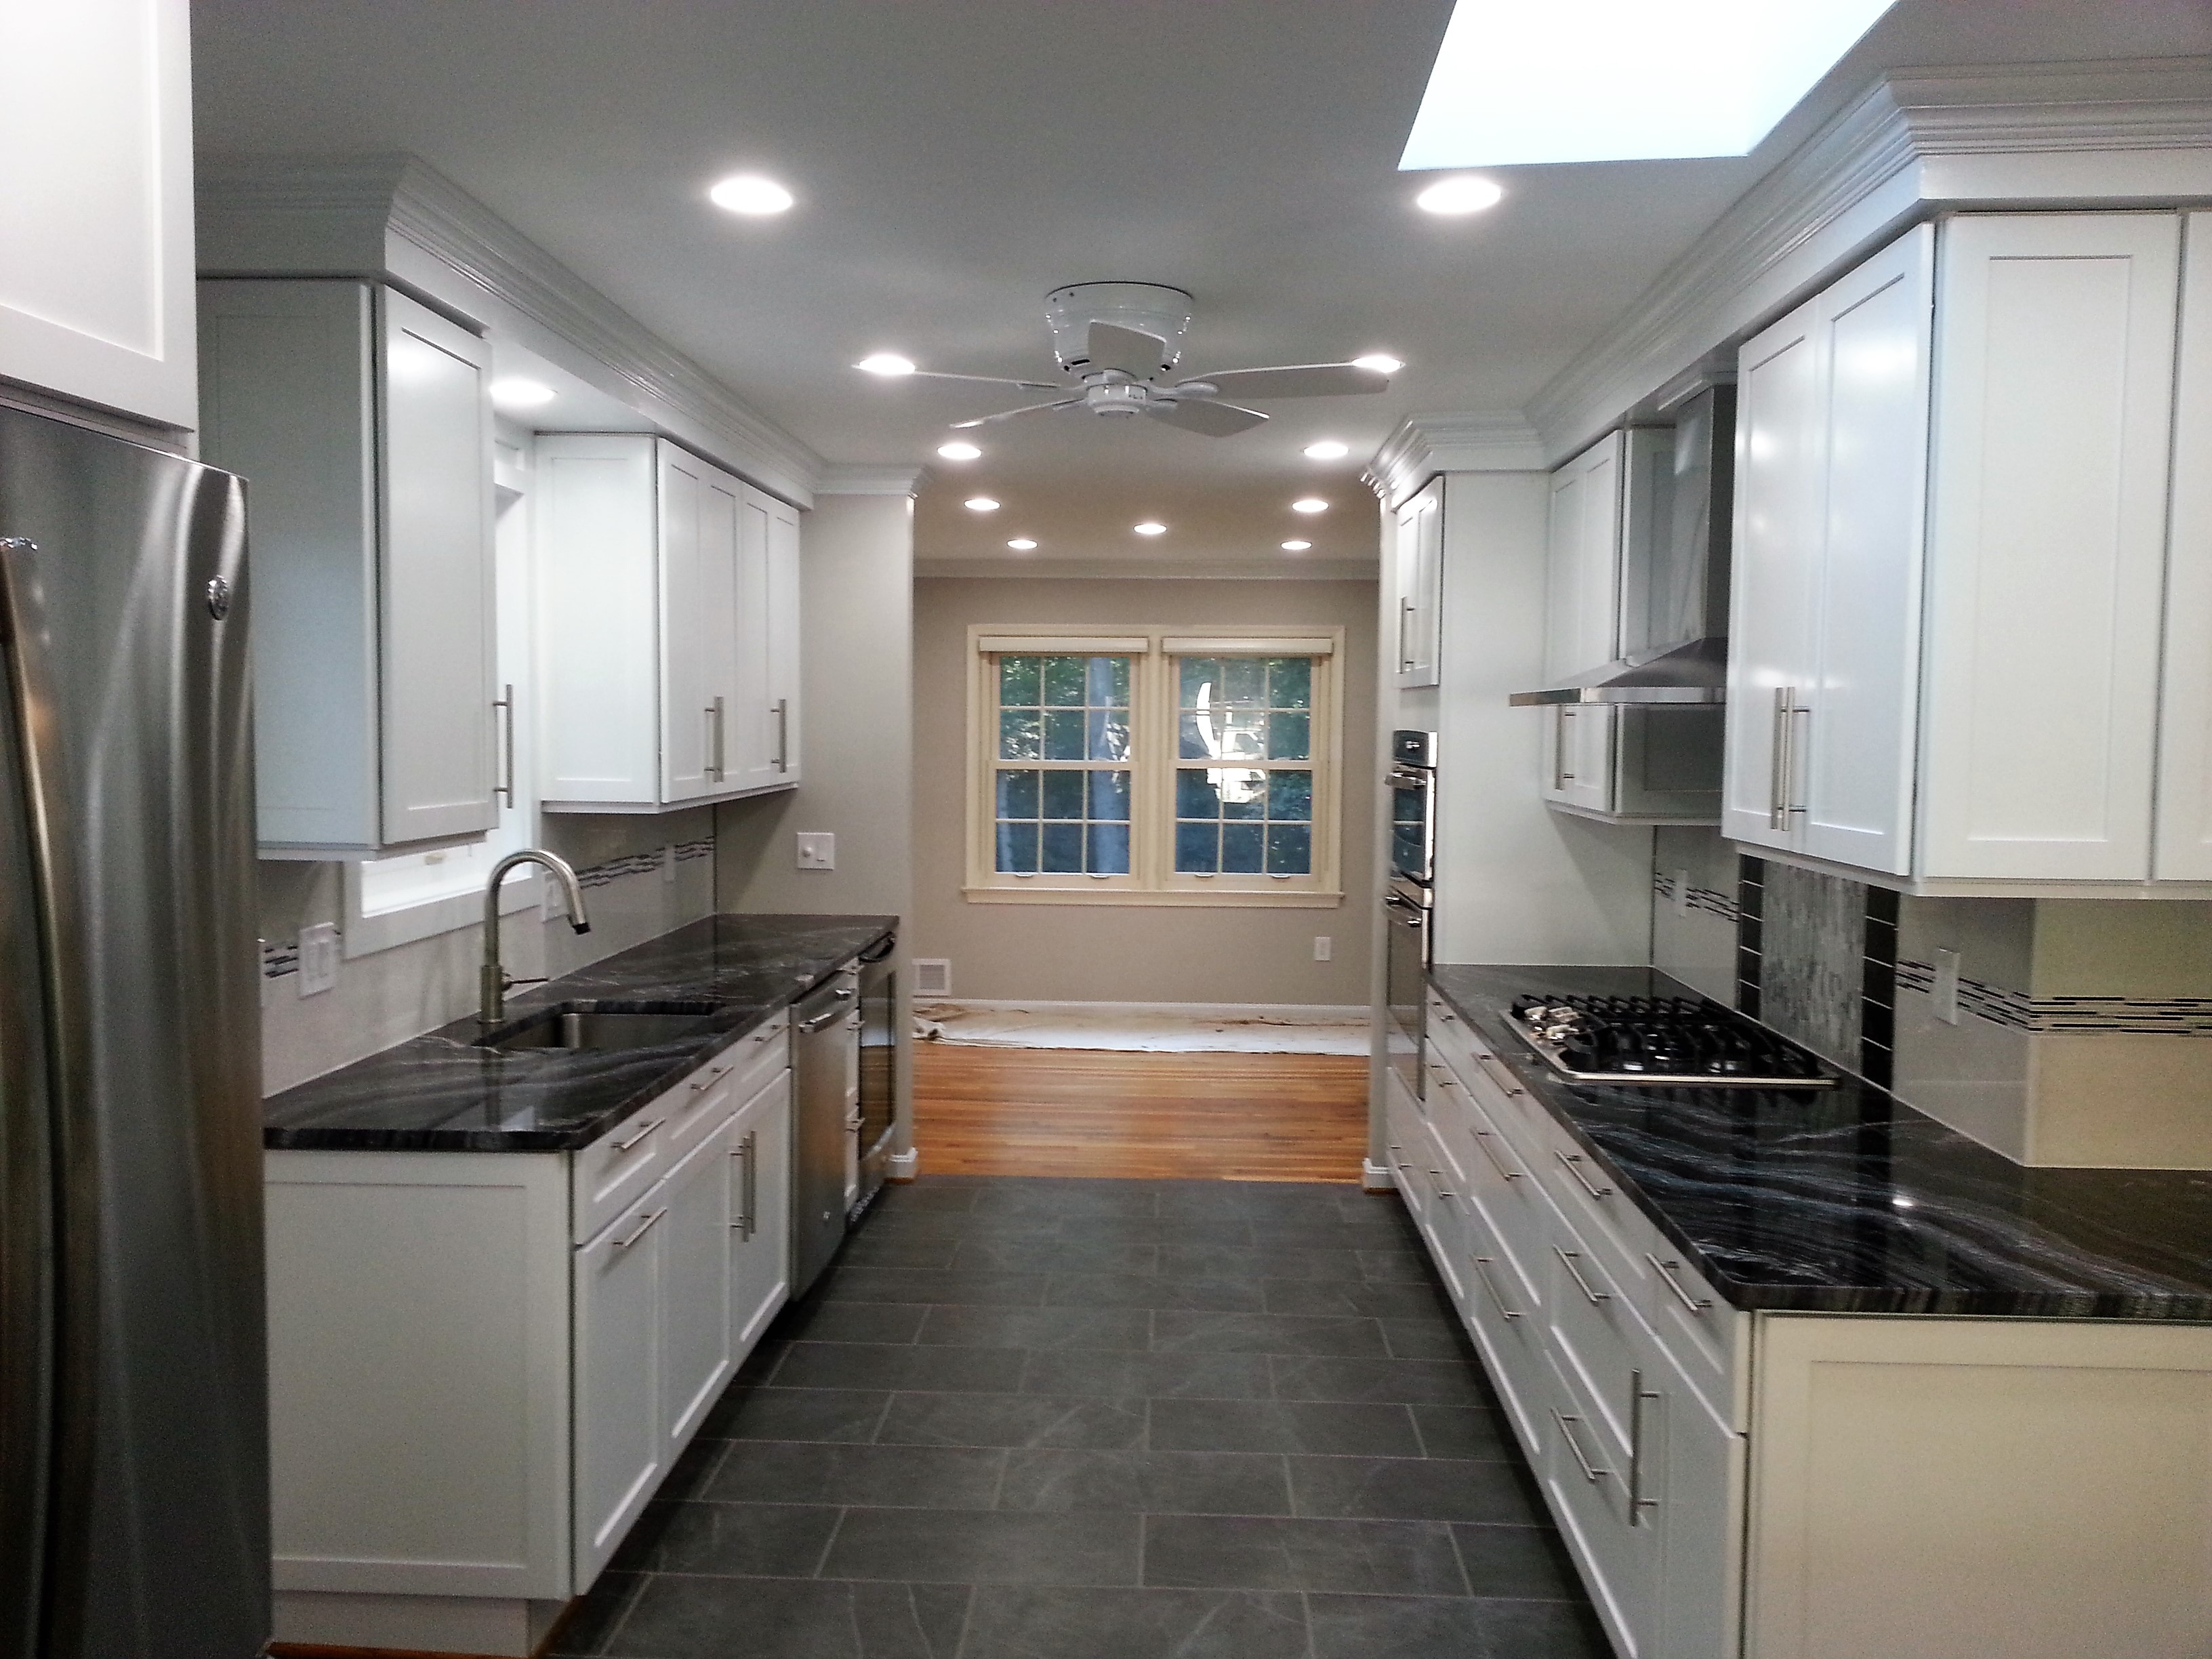 CUSTOM KITCHEN WITH WHITE CABINETS